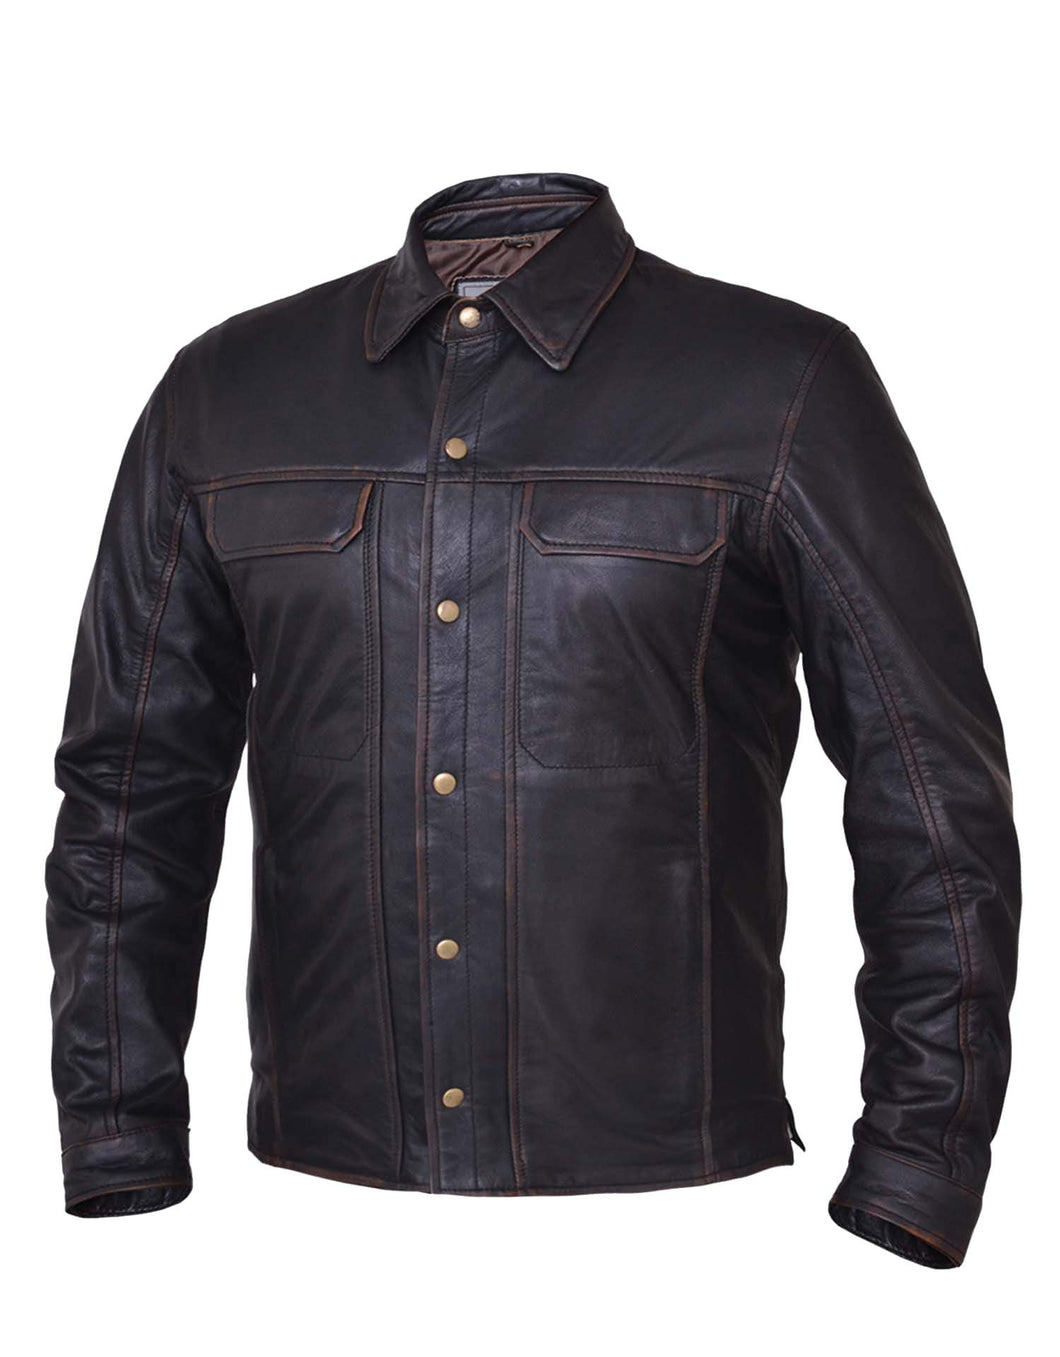 UNIK Men's Colorado Brown Leather Shirt - Ghost Rider Leather